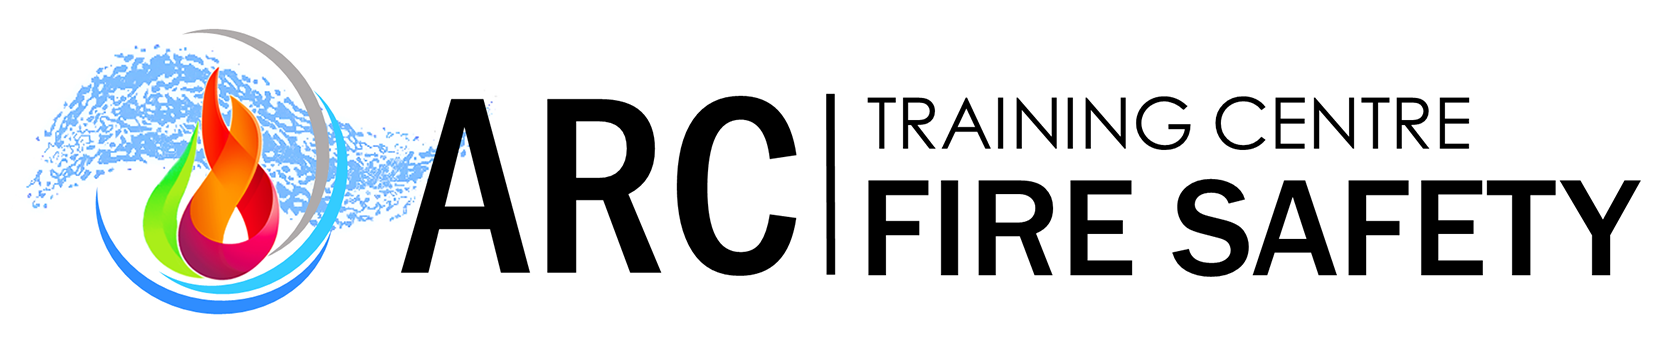 ARC Training Centre for Fire Safety